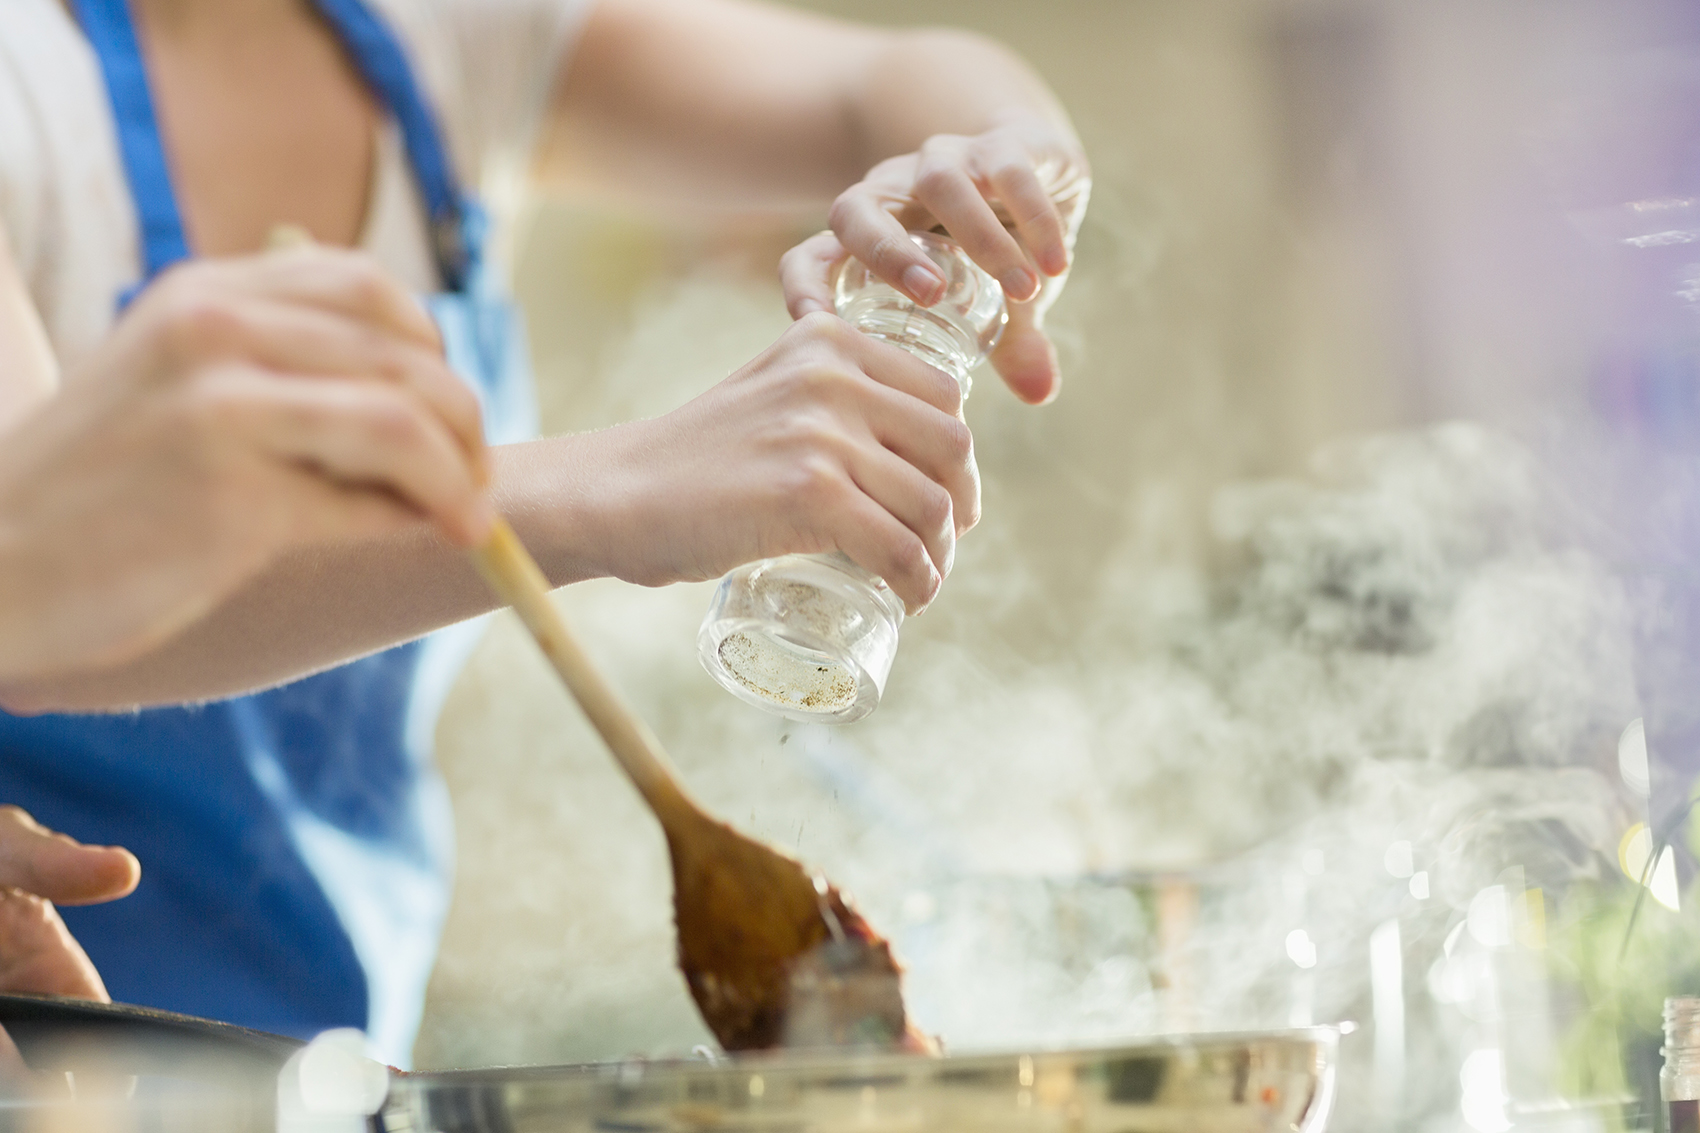 Two people cooking in kitchen